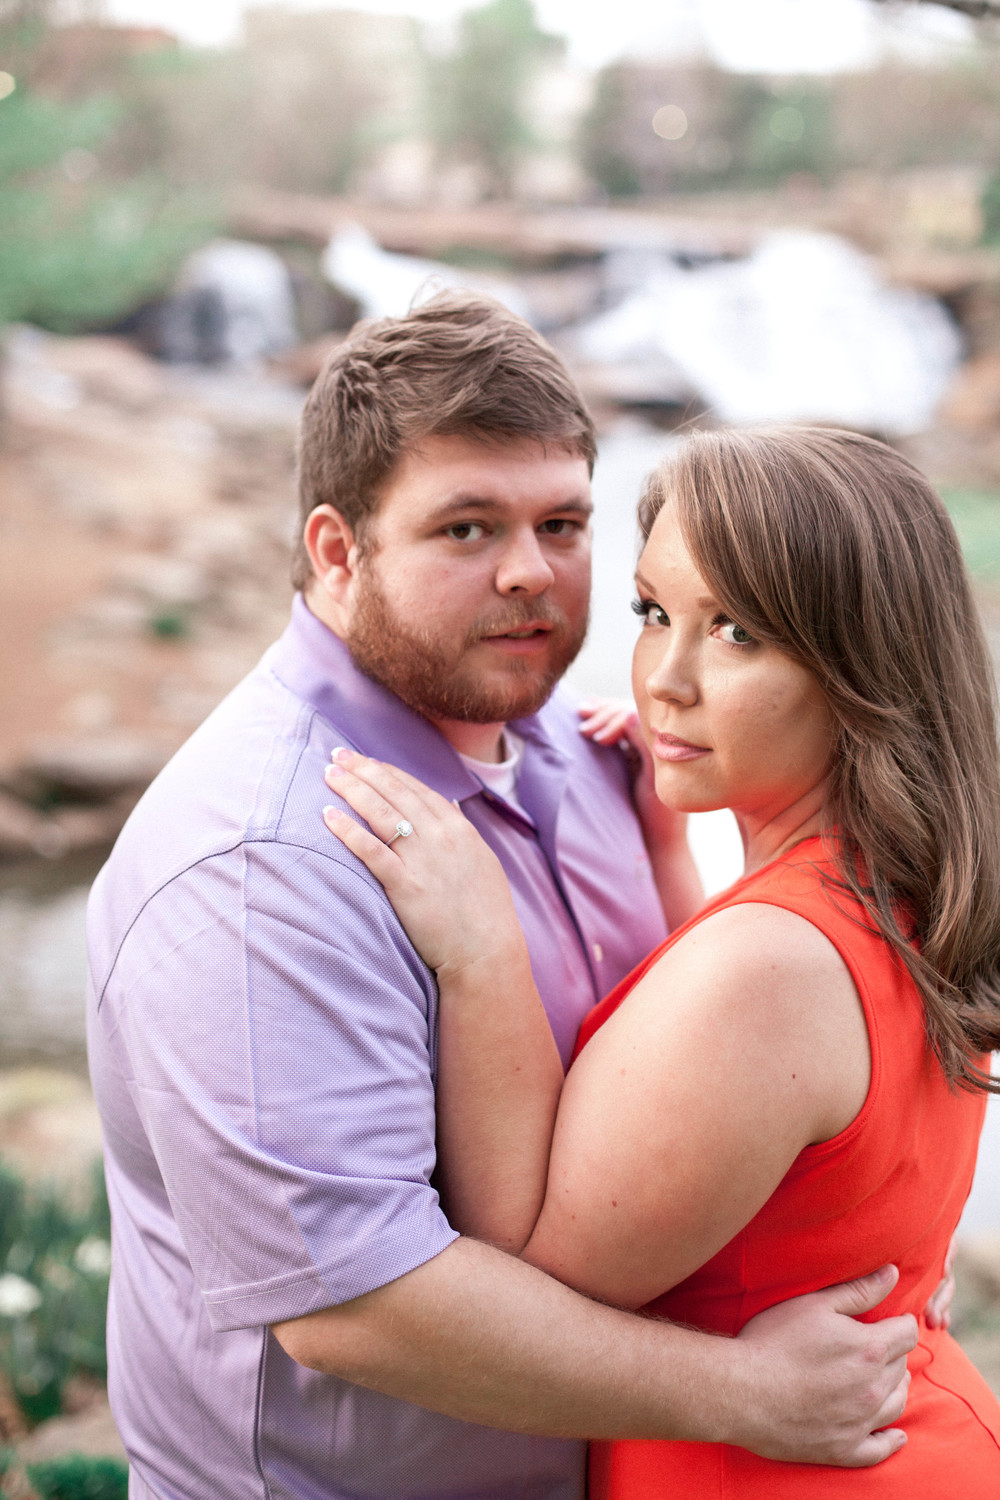 zach_gabbie_engagement_poured_out_photography-49.jpg